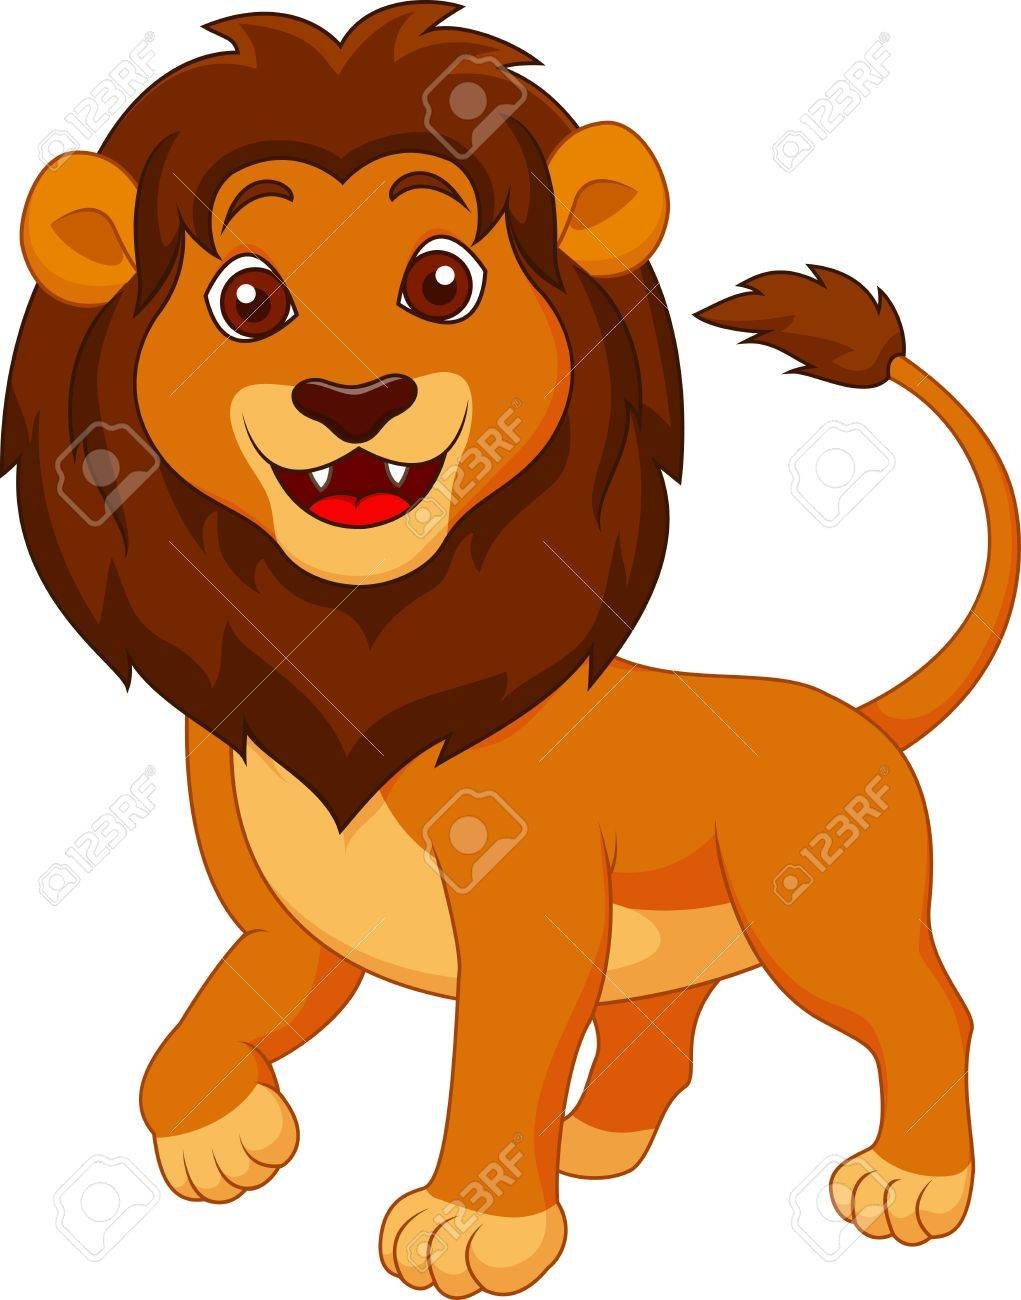 Cute Lion Cartoon Stock Photo, Picture And Royalty Free Image ...